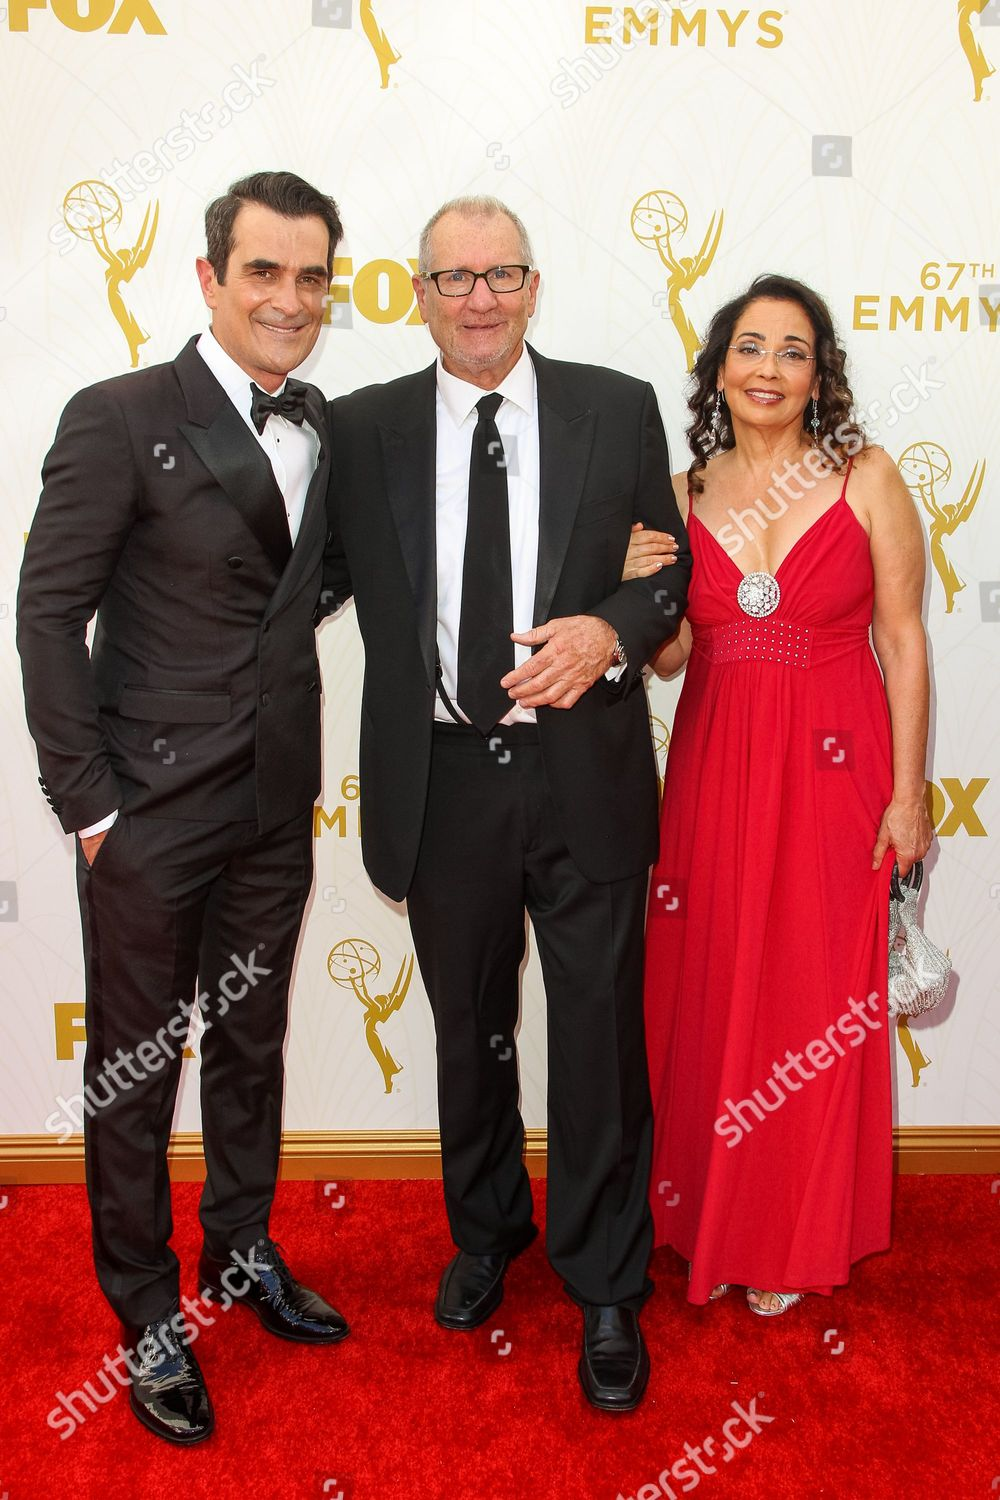 Left Ty Burrell Ed Oneill Catherine Rusoff Editorial Stock Photo Stock Image Shutterstock Ed o'neill and catherine rusoff walk the green carpet at the 15th annual. https www shutterstock com editorial image editorial 67th primetime emmy awards red carpet los angeles usa 9058805ar